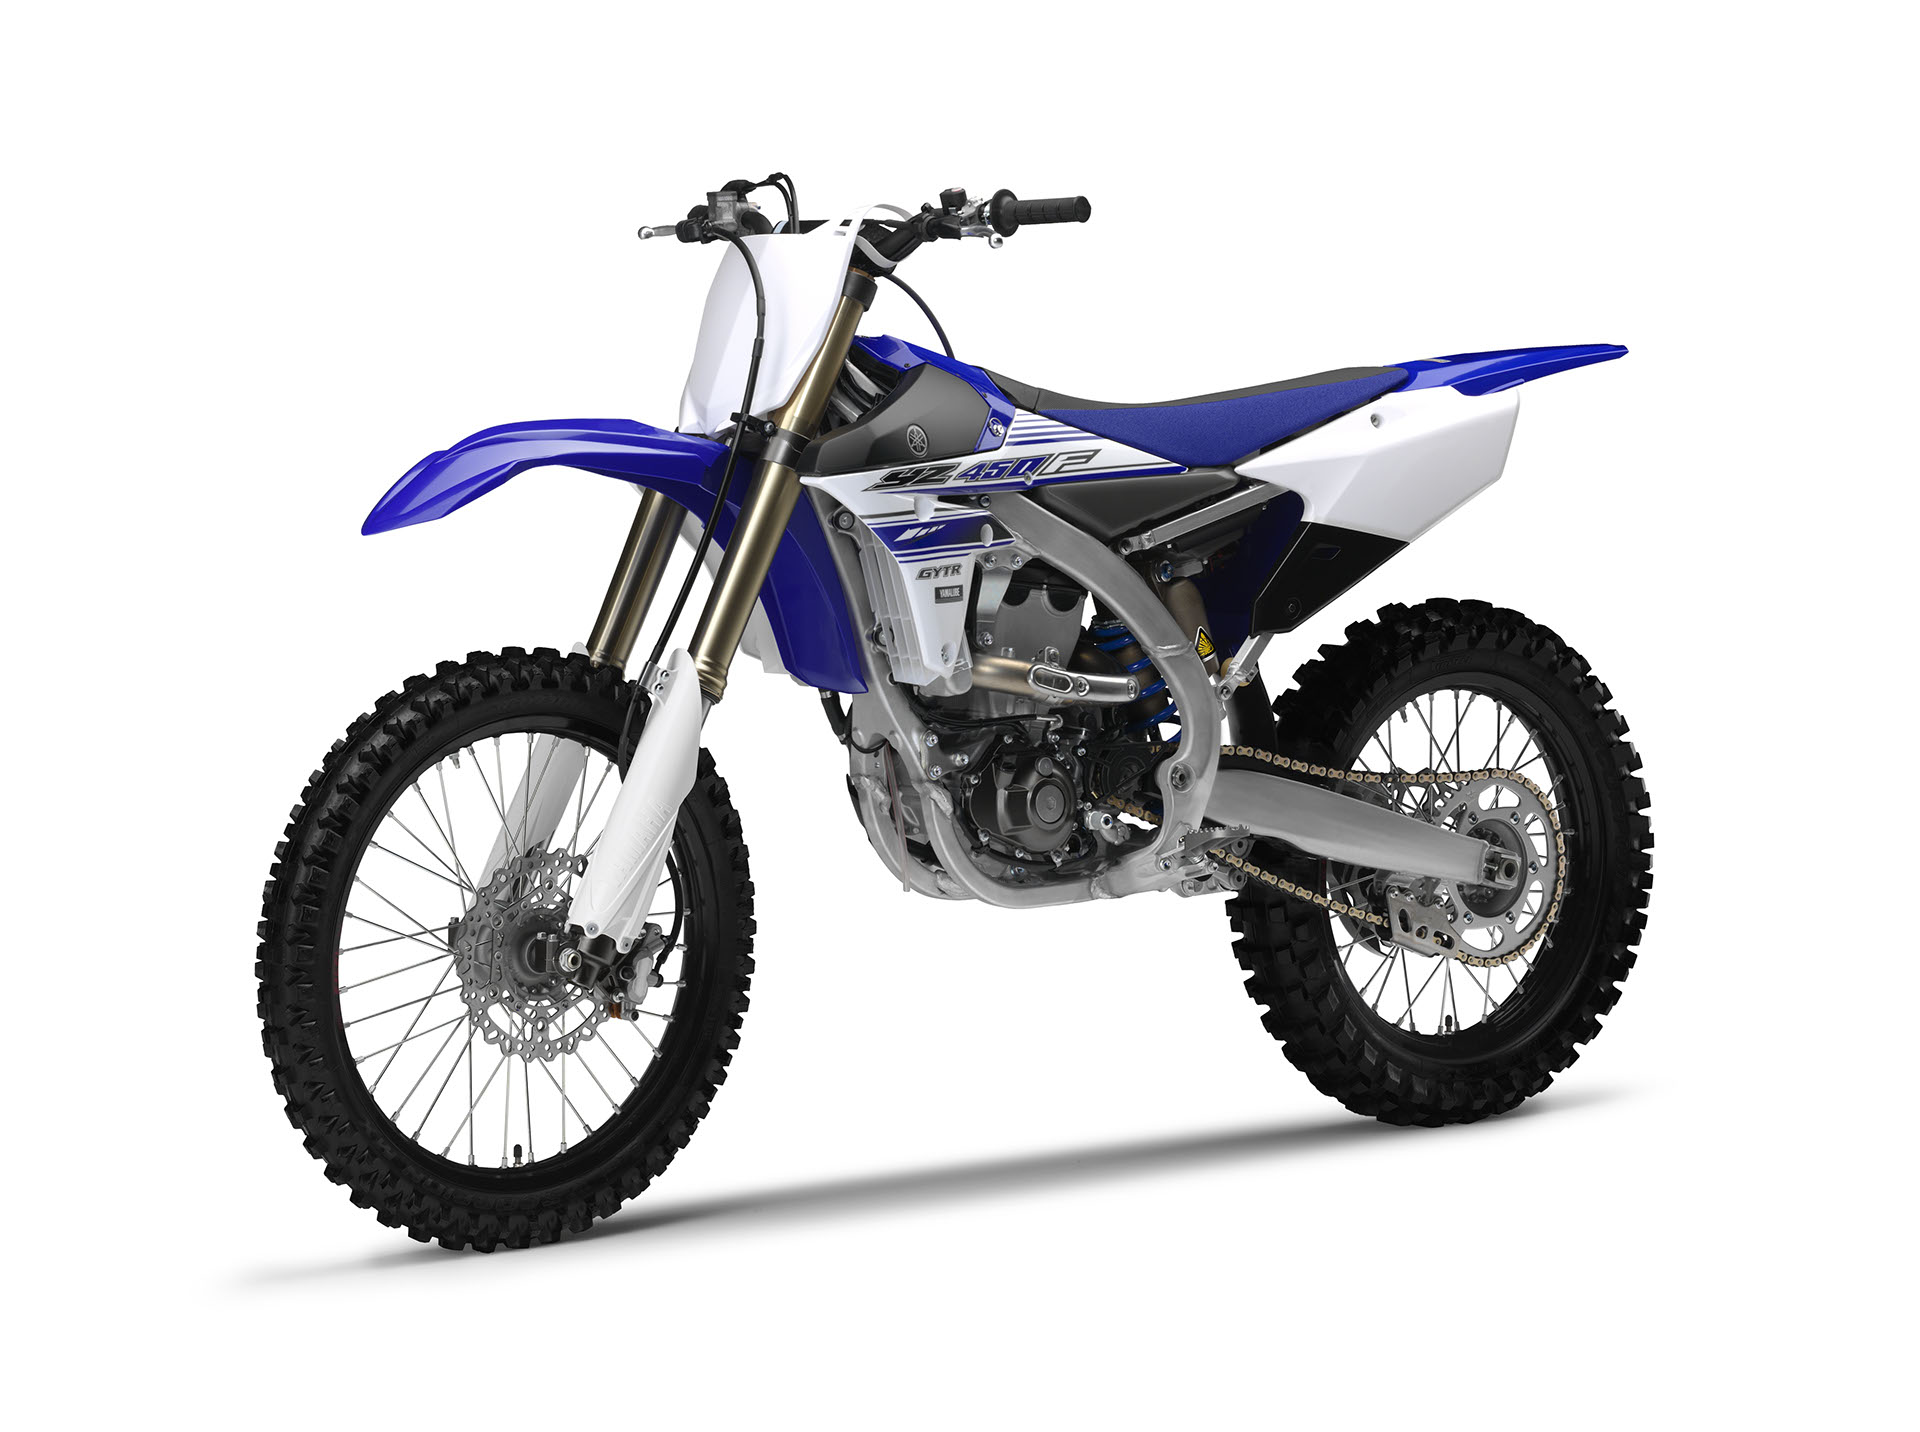 2016 Yamaha YZ250F Release Date